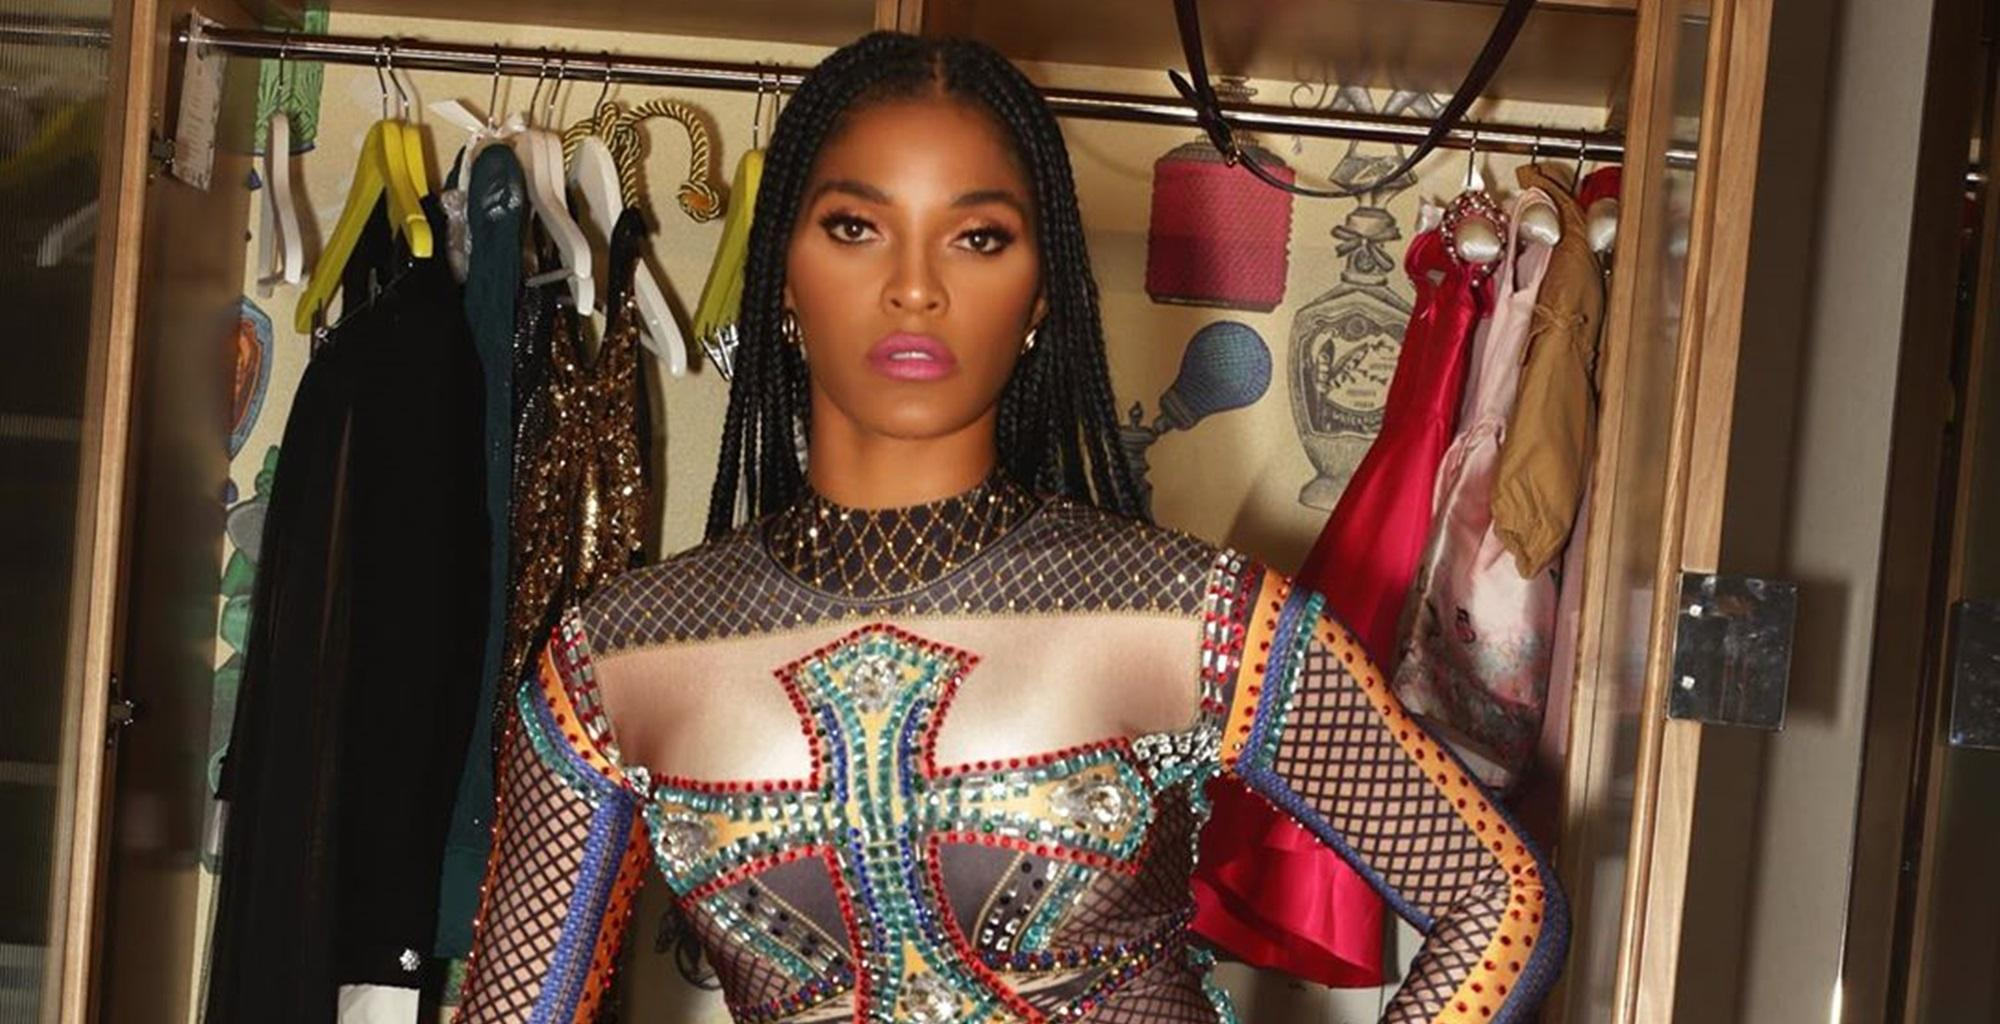 Joseline Hernandez Fights With Fans And Removes Her Dress In Wild Video In A Nightclub Because Of Something Linked To Stevie J